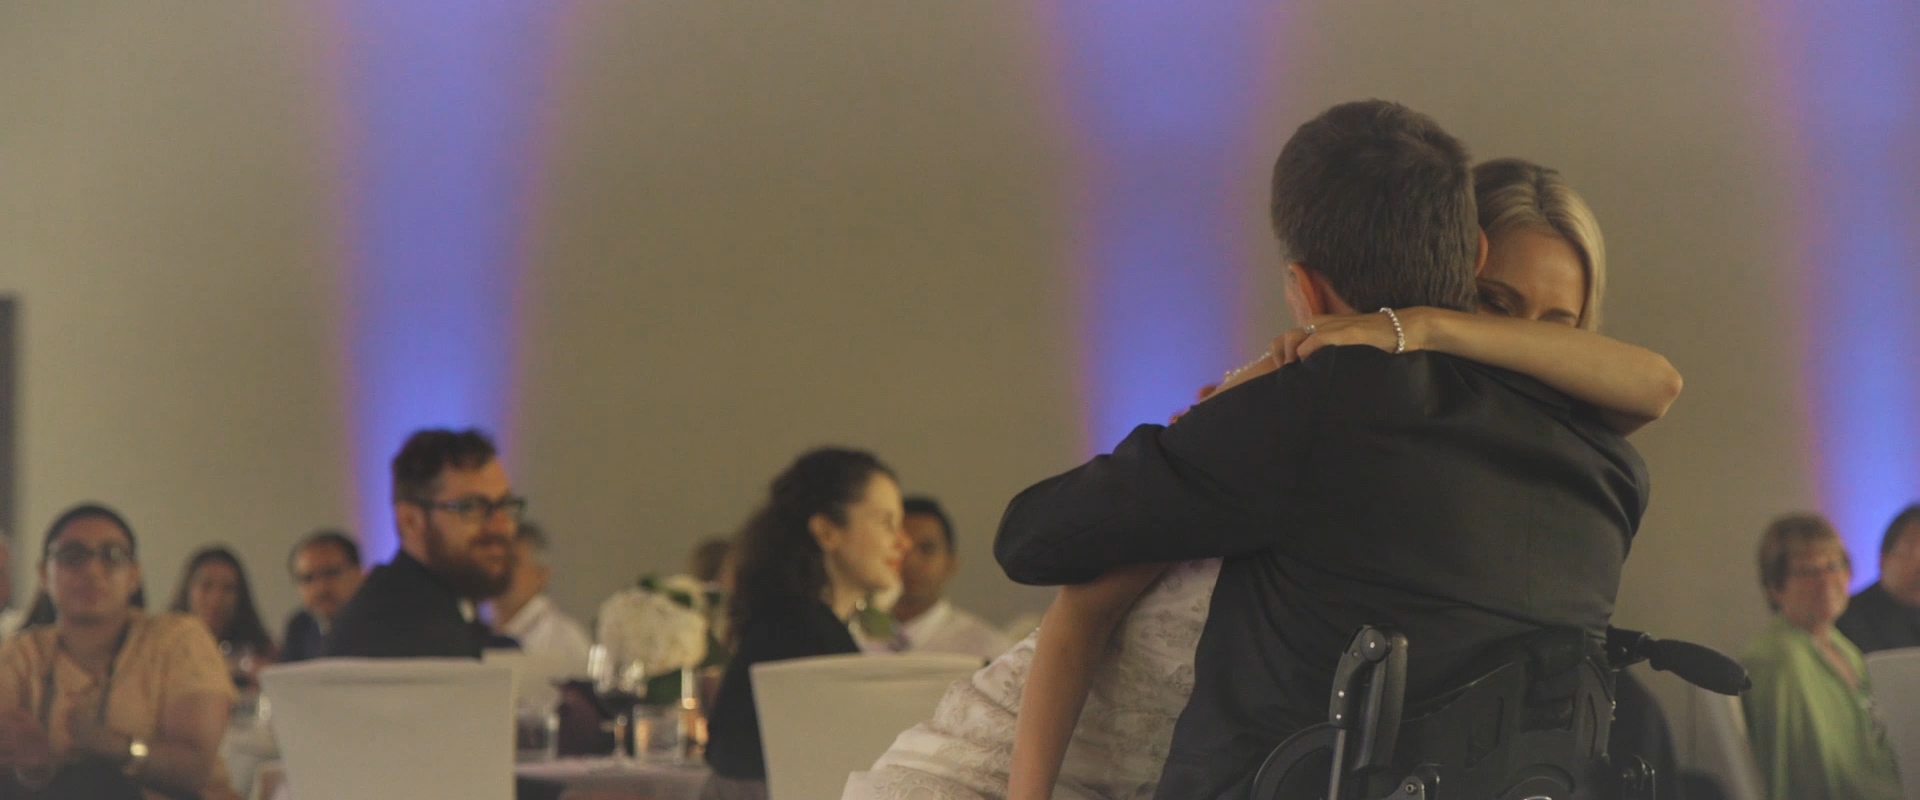 An image of a father embracing his newly wedded daughter after their first dance; taken from a Toronto Wedding Video